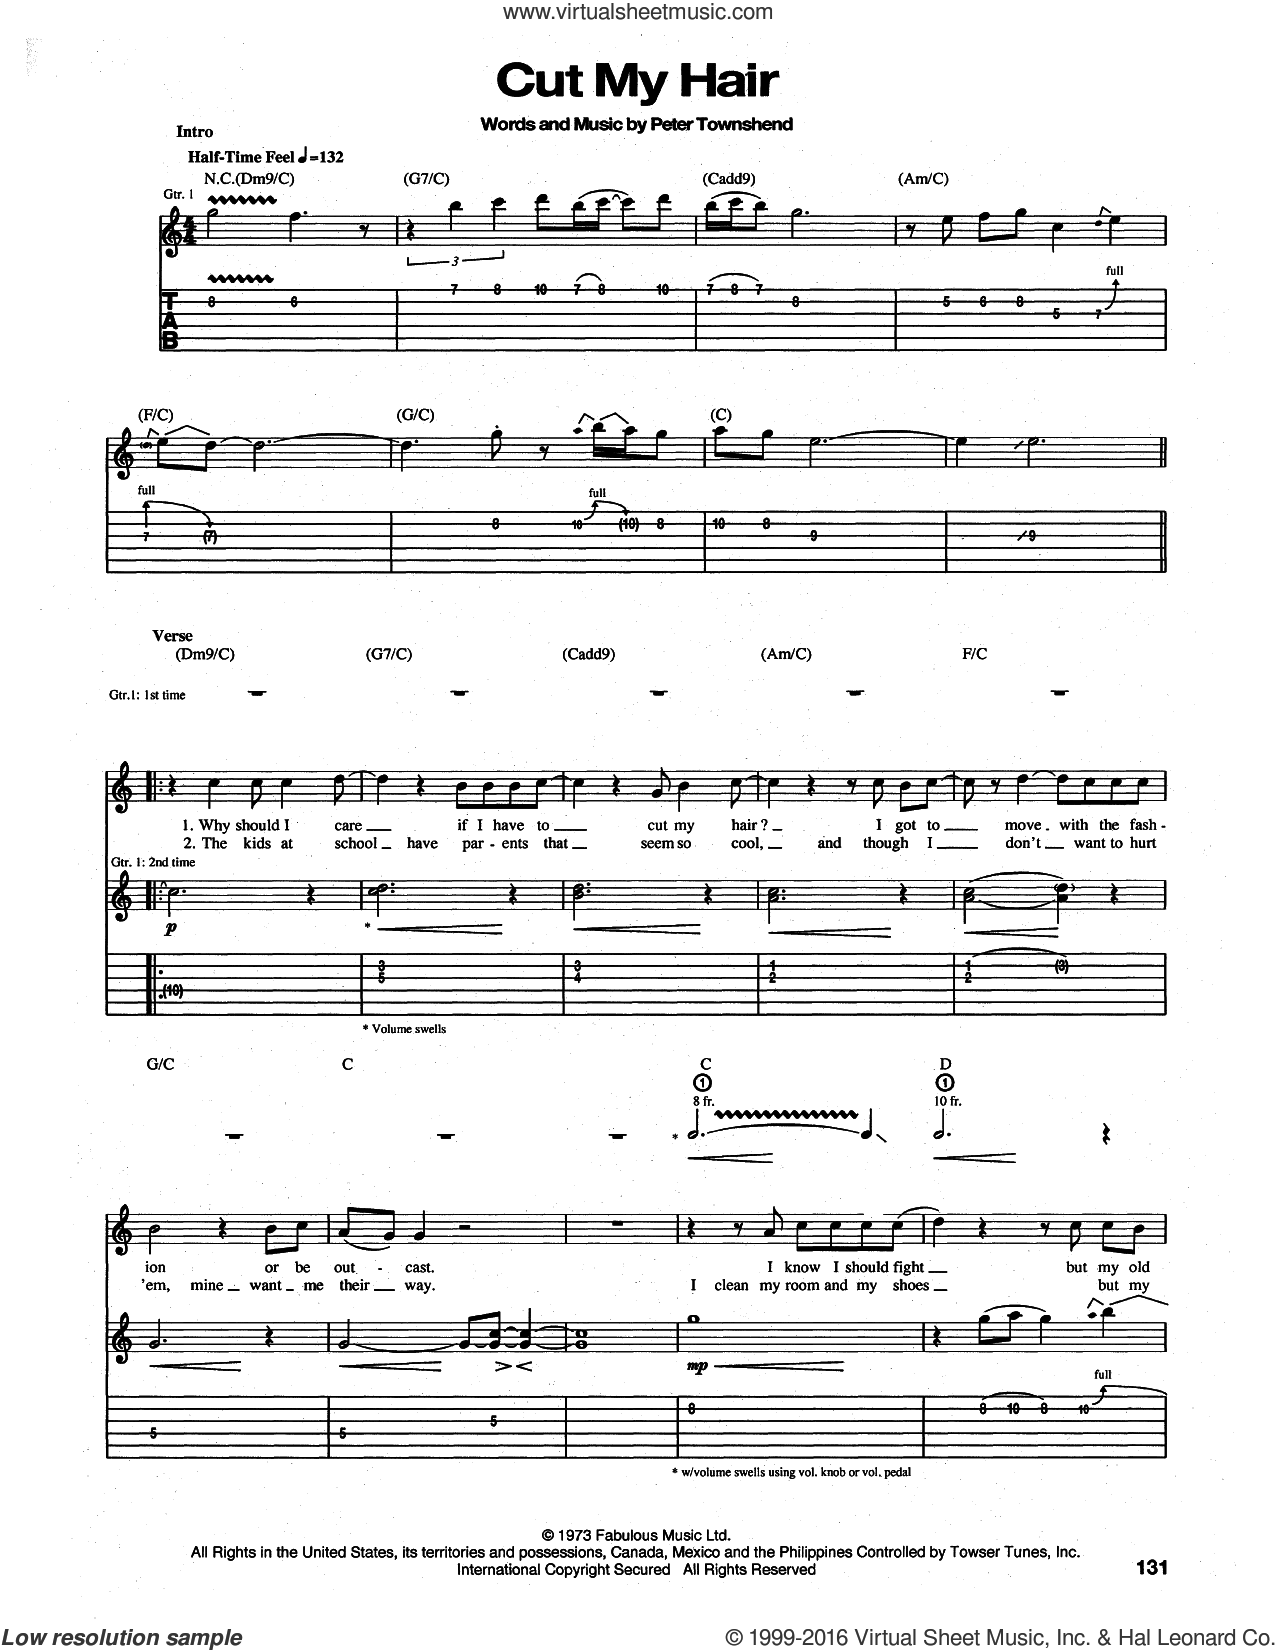 Cut My Hair sheet music for guitar (tablature) by The Who and Pete Townshend, intermediate guitar (tablature). Score Image Preview.